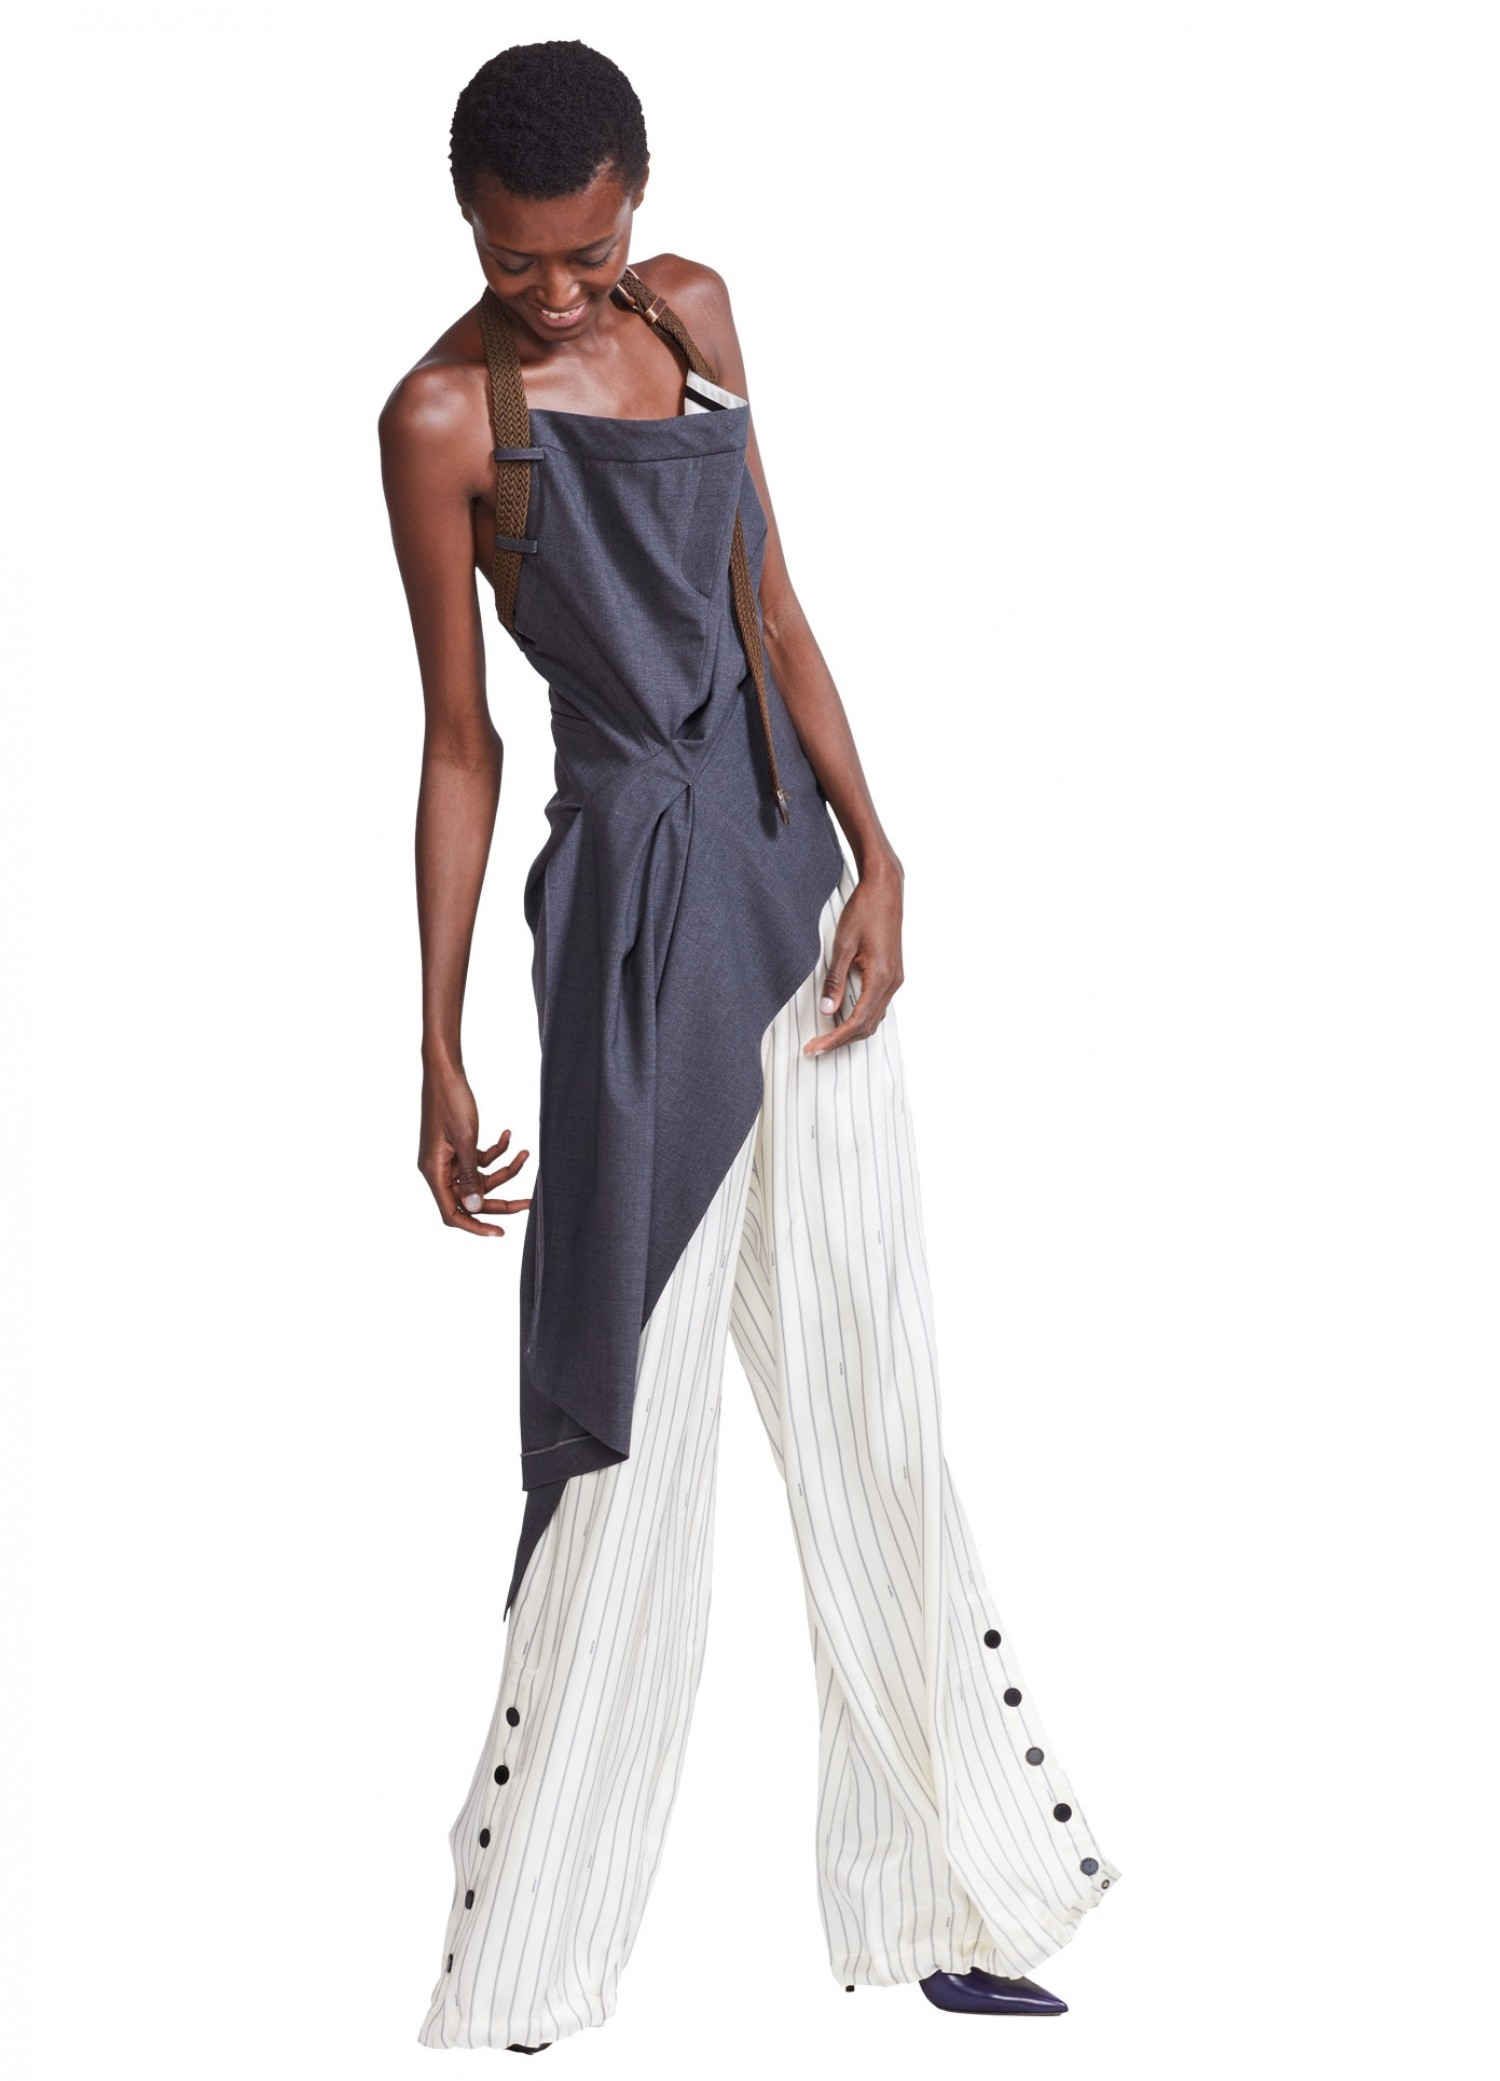 MONSE Trouser Draped Top on Model Side View